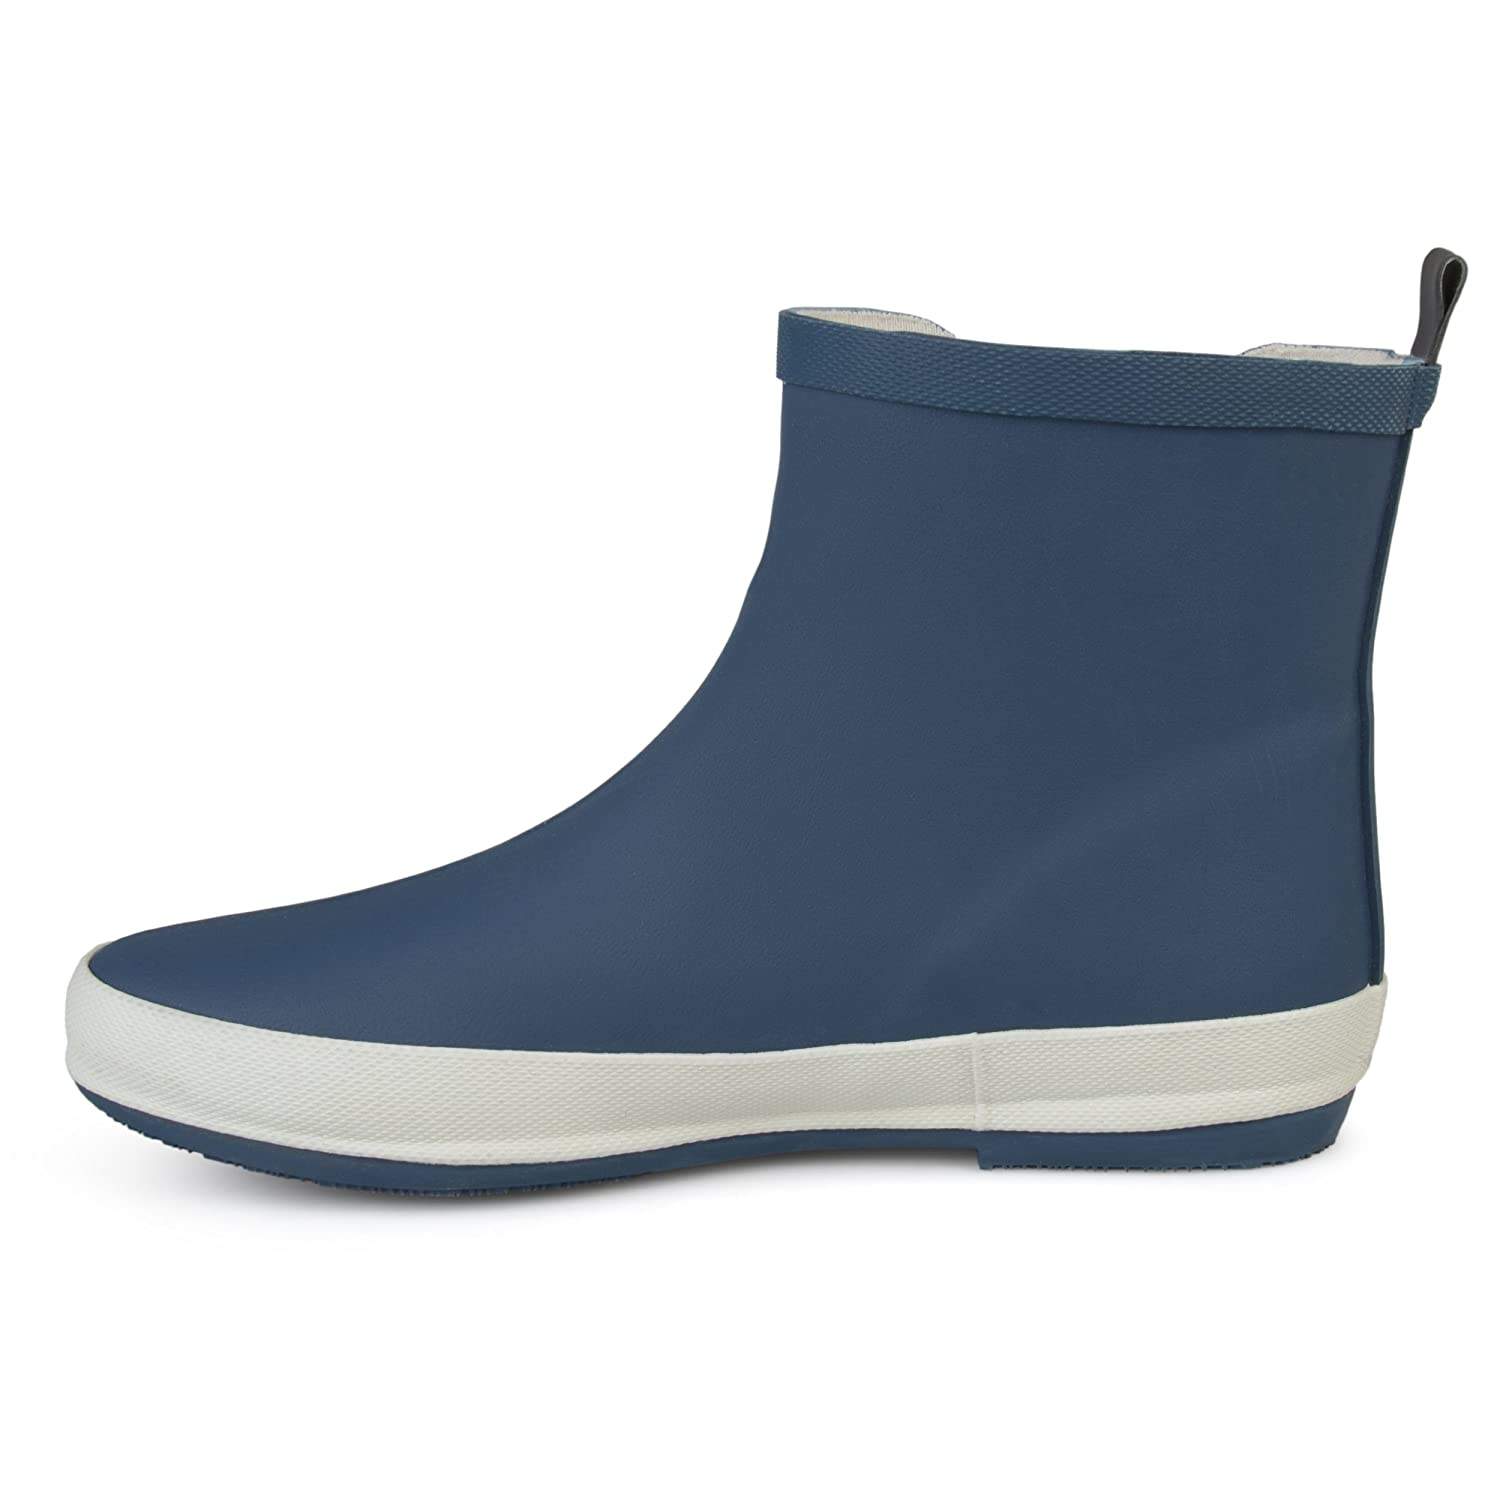 Brinley Co Womens Samar Rubber Sporty Solid Color Rainboots B0741DXBQQ 12 B(M) US|Navy